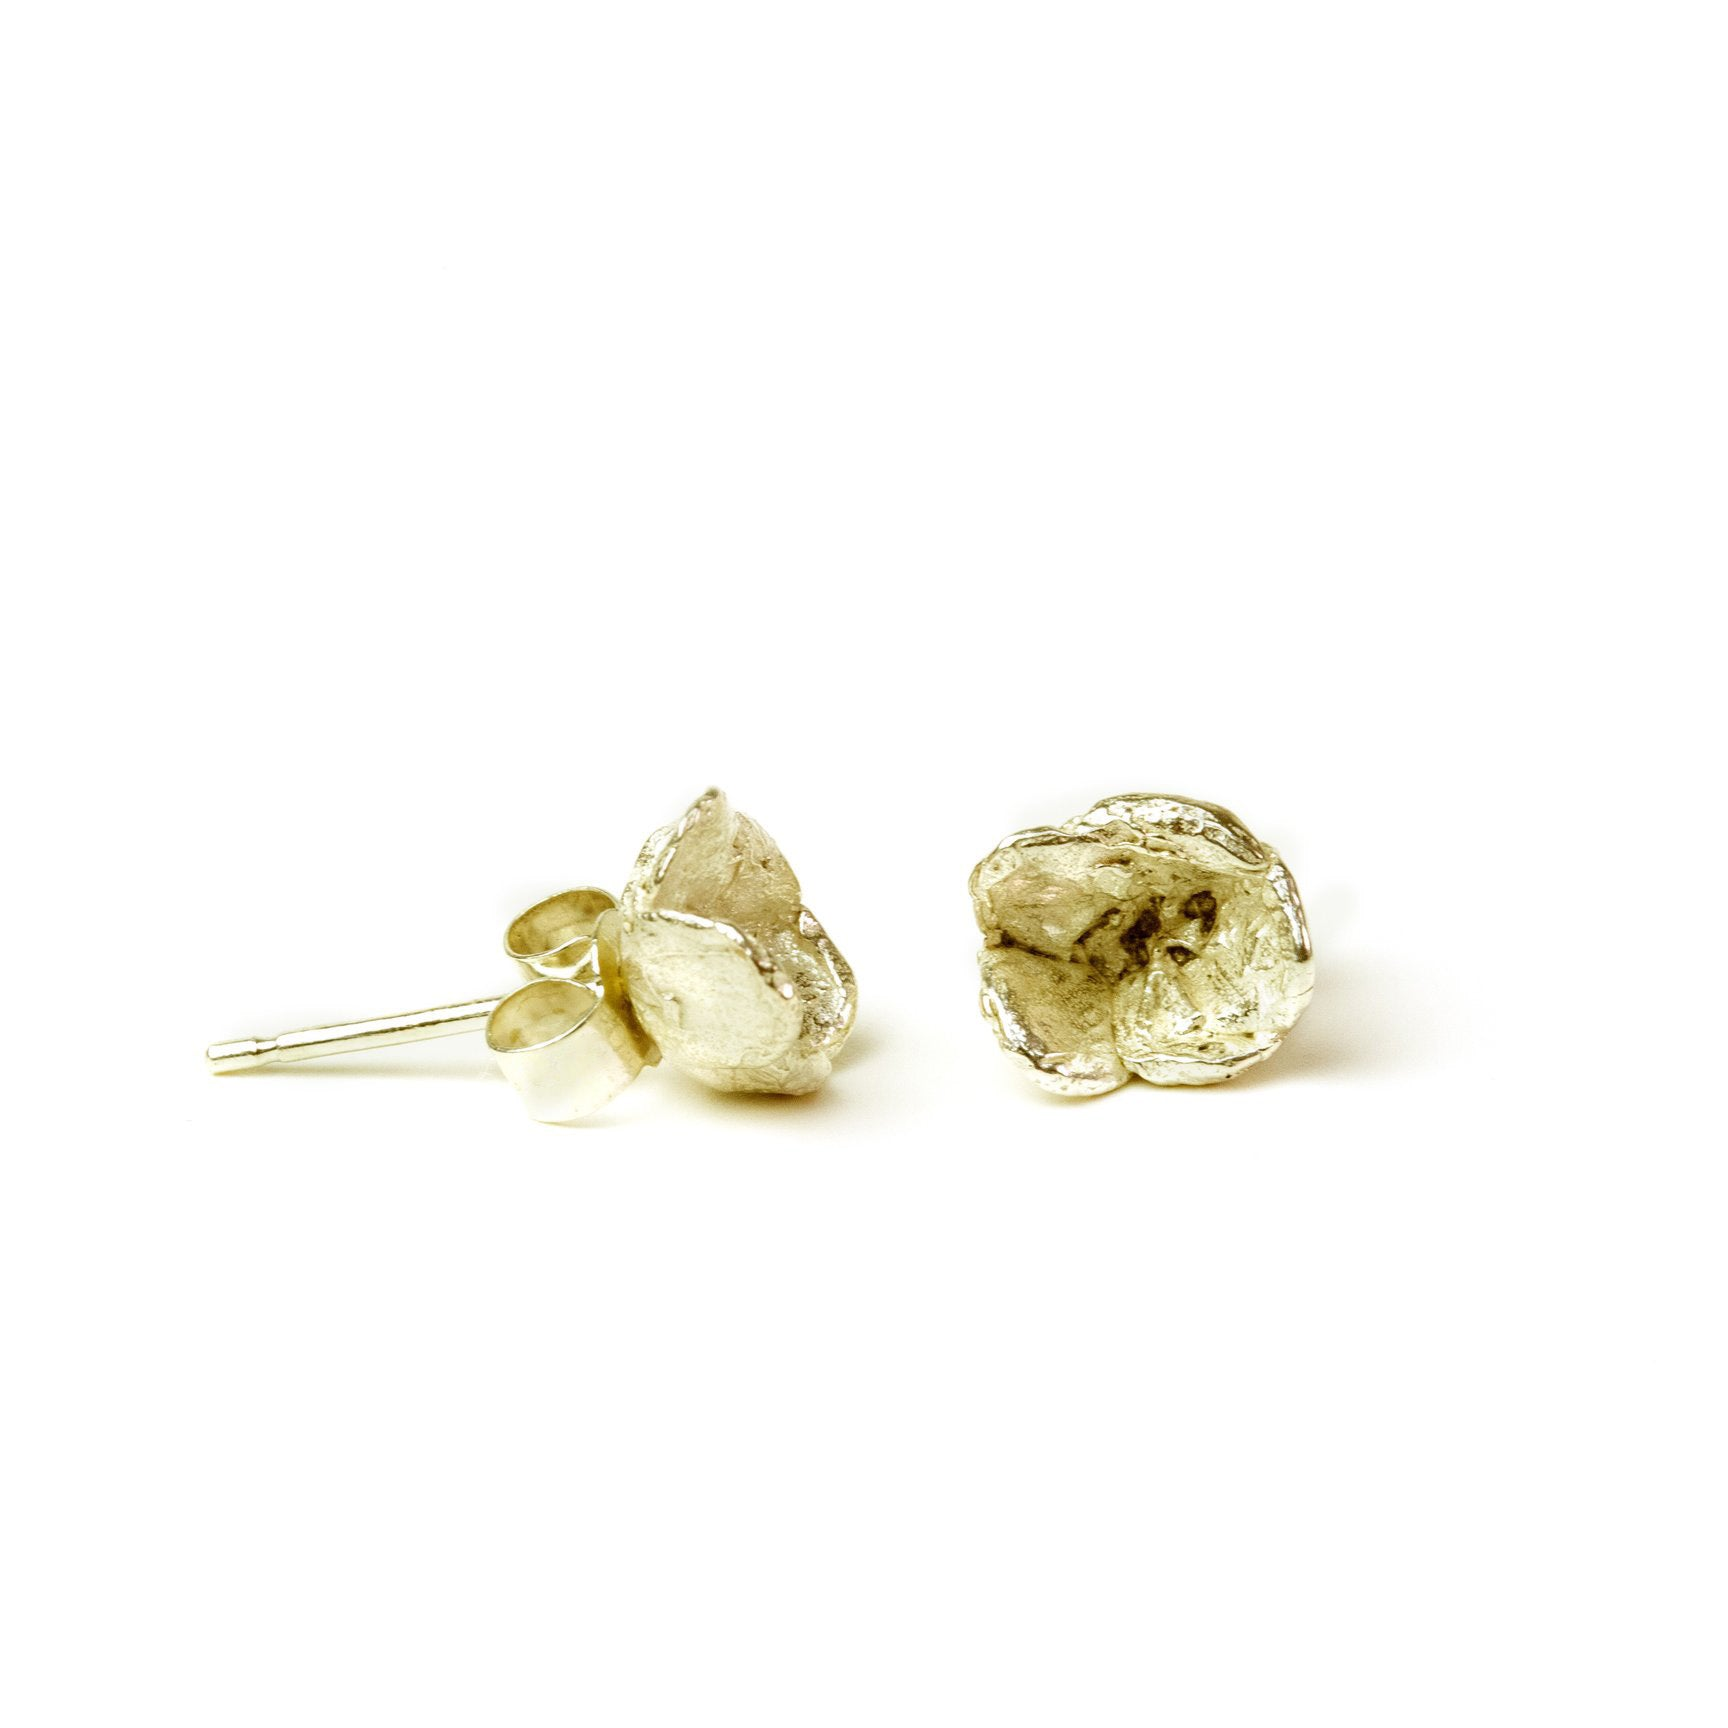 Small Blueweed Flower Stud Earrings